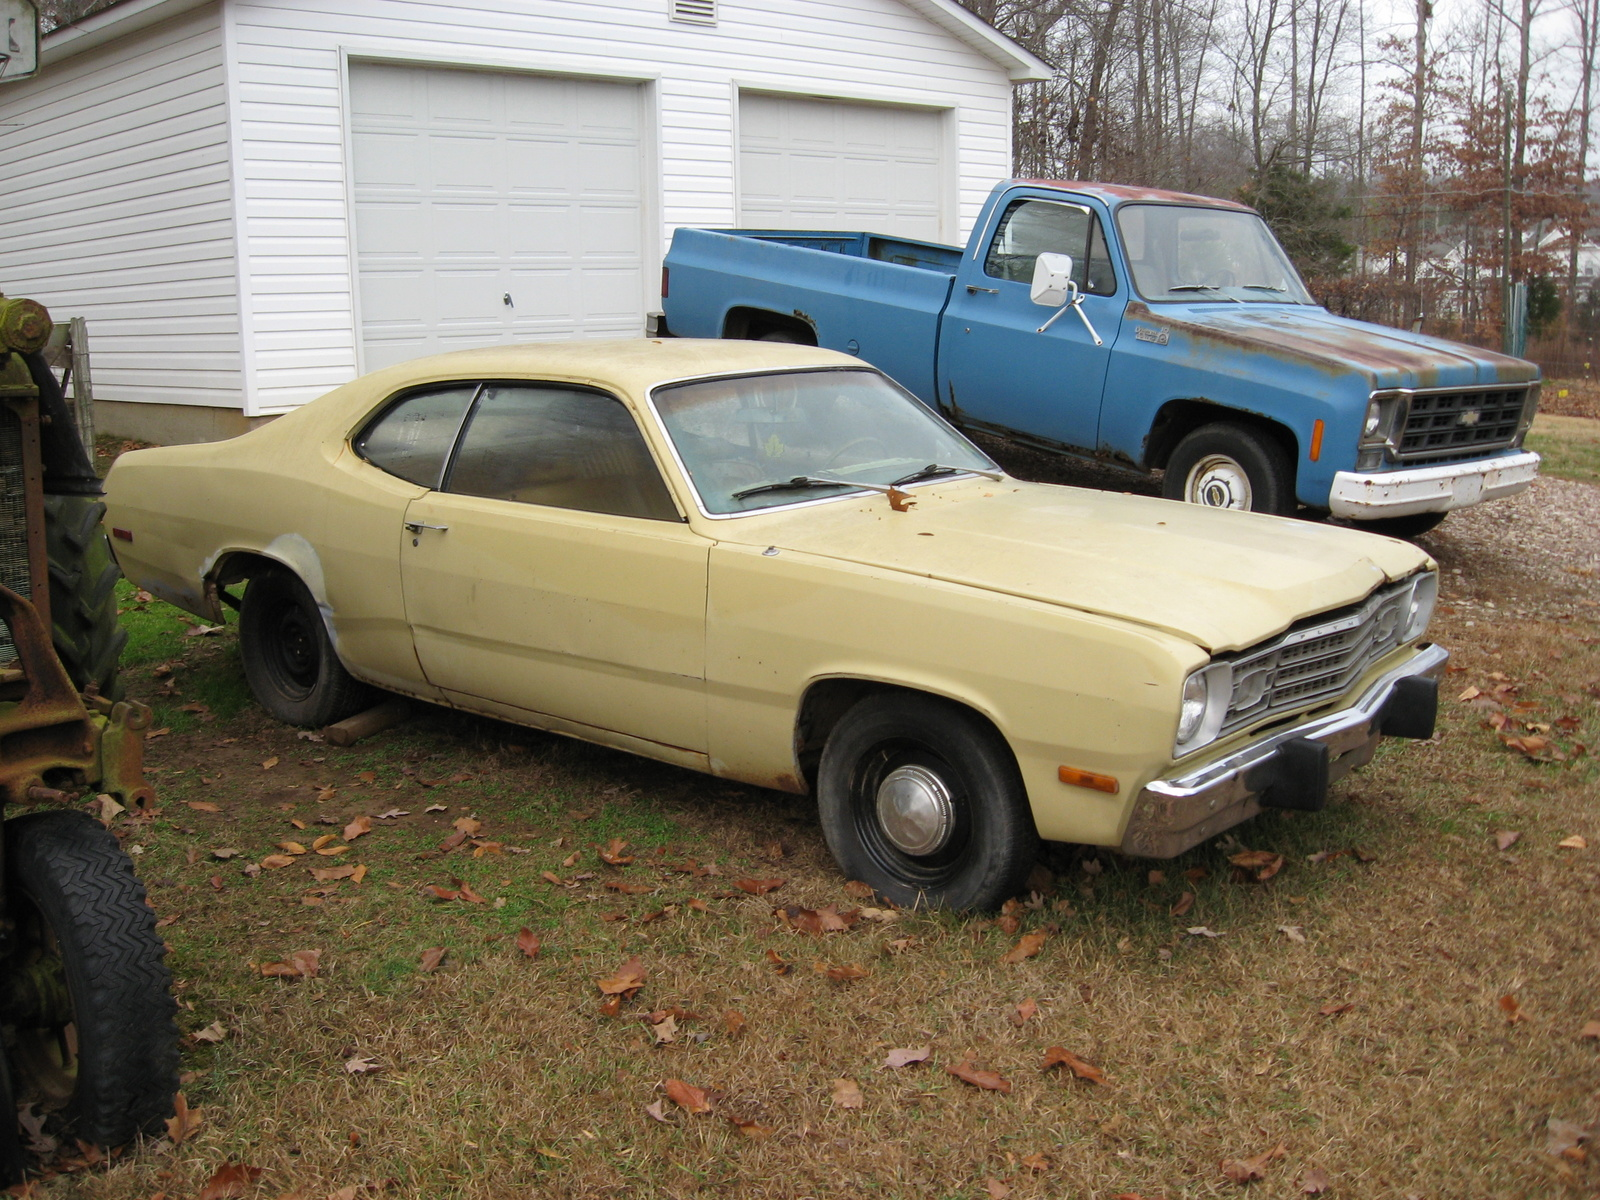 plymouth duster questions how much does a 1970 plymouth duster sell for in good condition. Black Bedroom Furniture Sets. Home Design Ideas